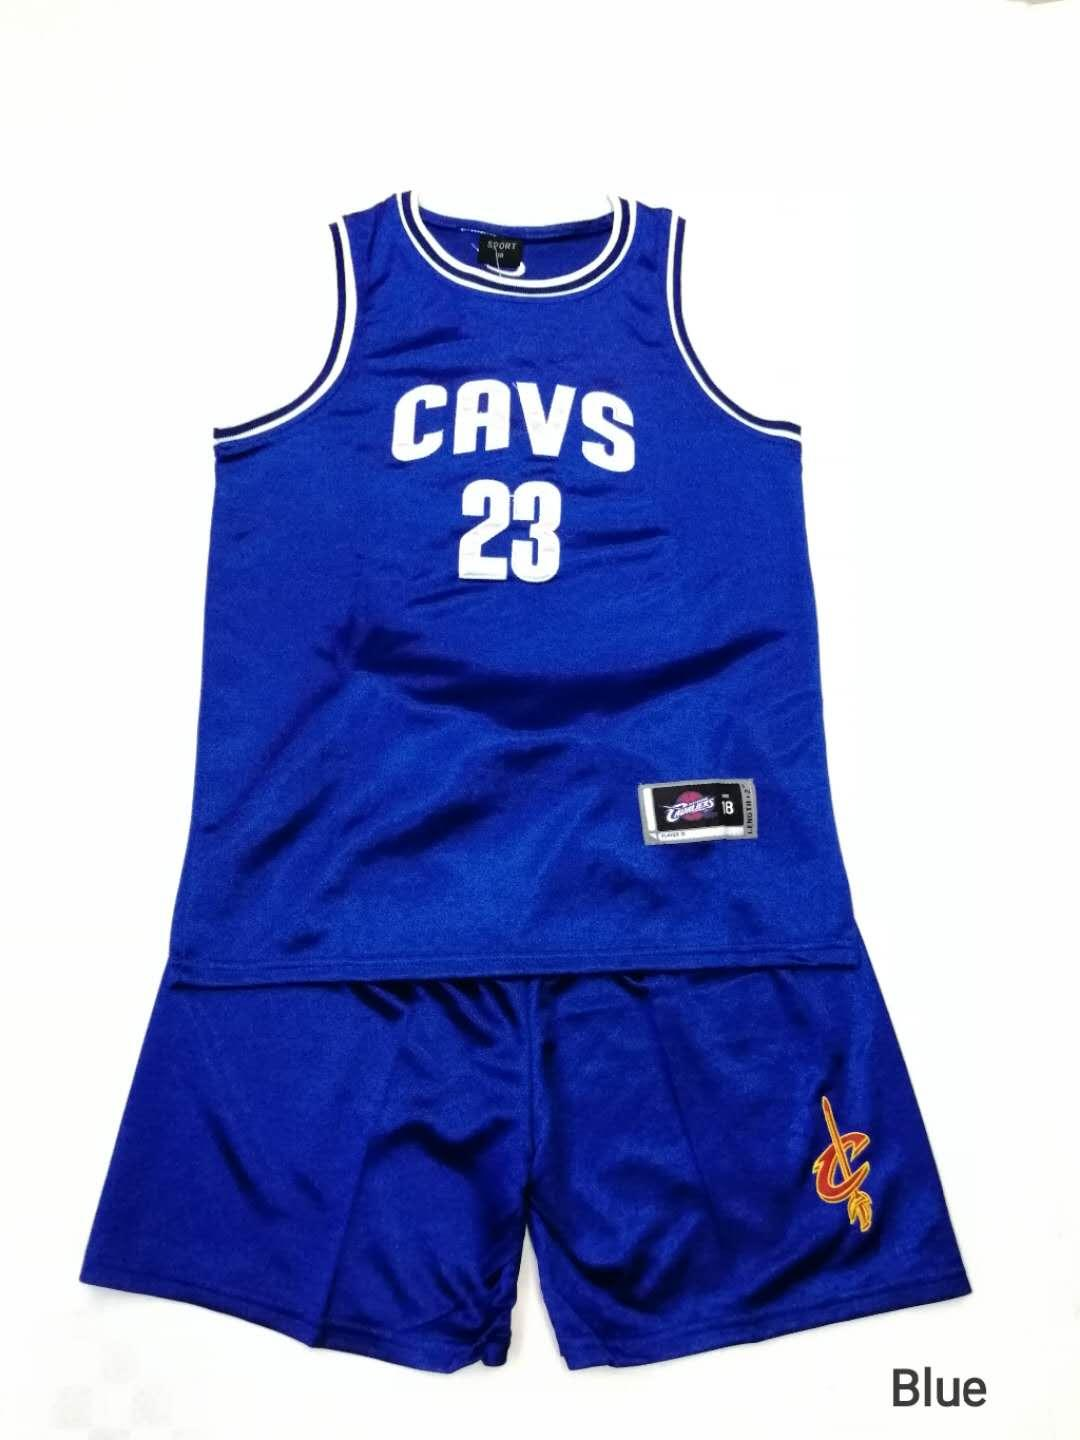 official photos c855d 69bfc NBA Jersey unisex set golden state for kids boys girls curry #30 basketall  suit red blue black red yellow white jerseys #5003